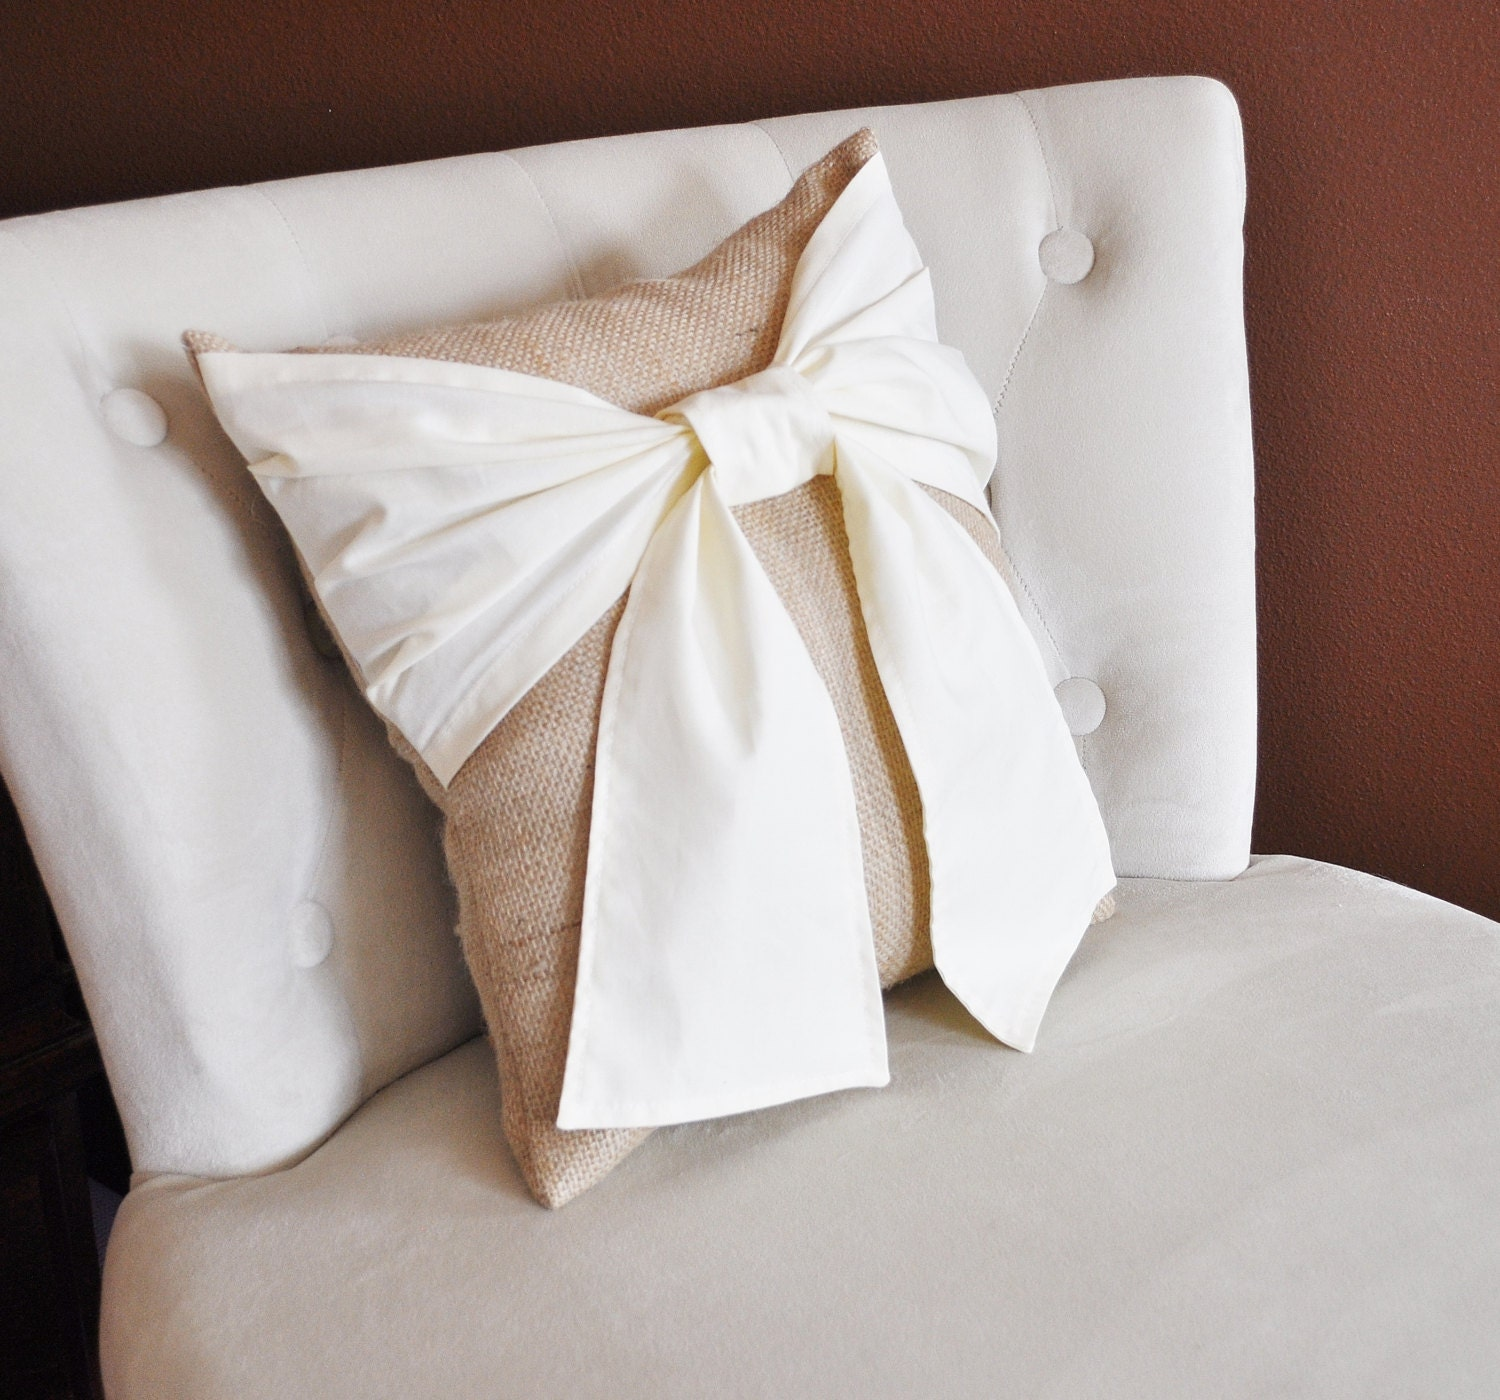 Burlap Throw Pillows Etsy : Throw Pillow Cream Bow on Burlap Rustic Pillow 14x14 Rustic